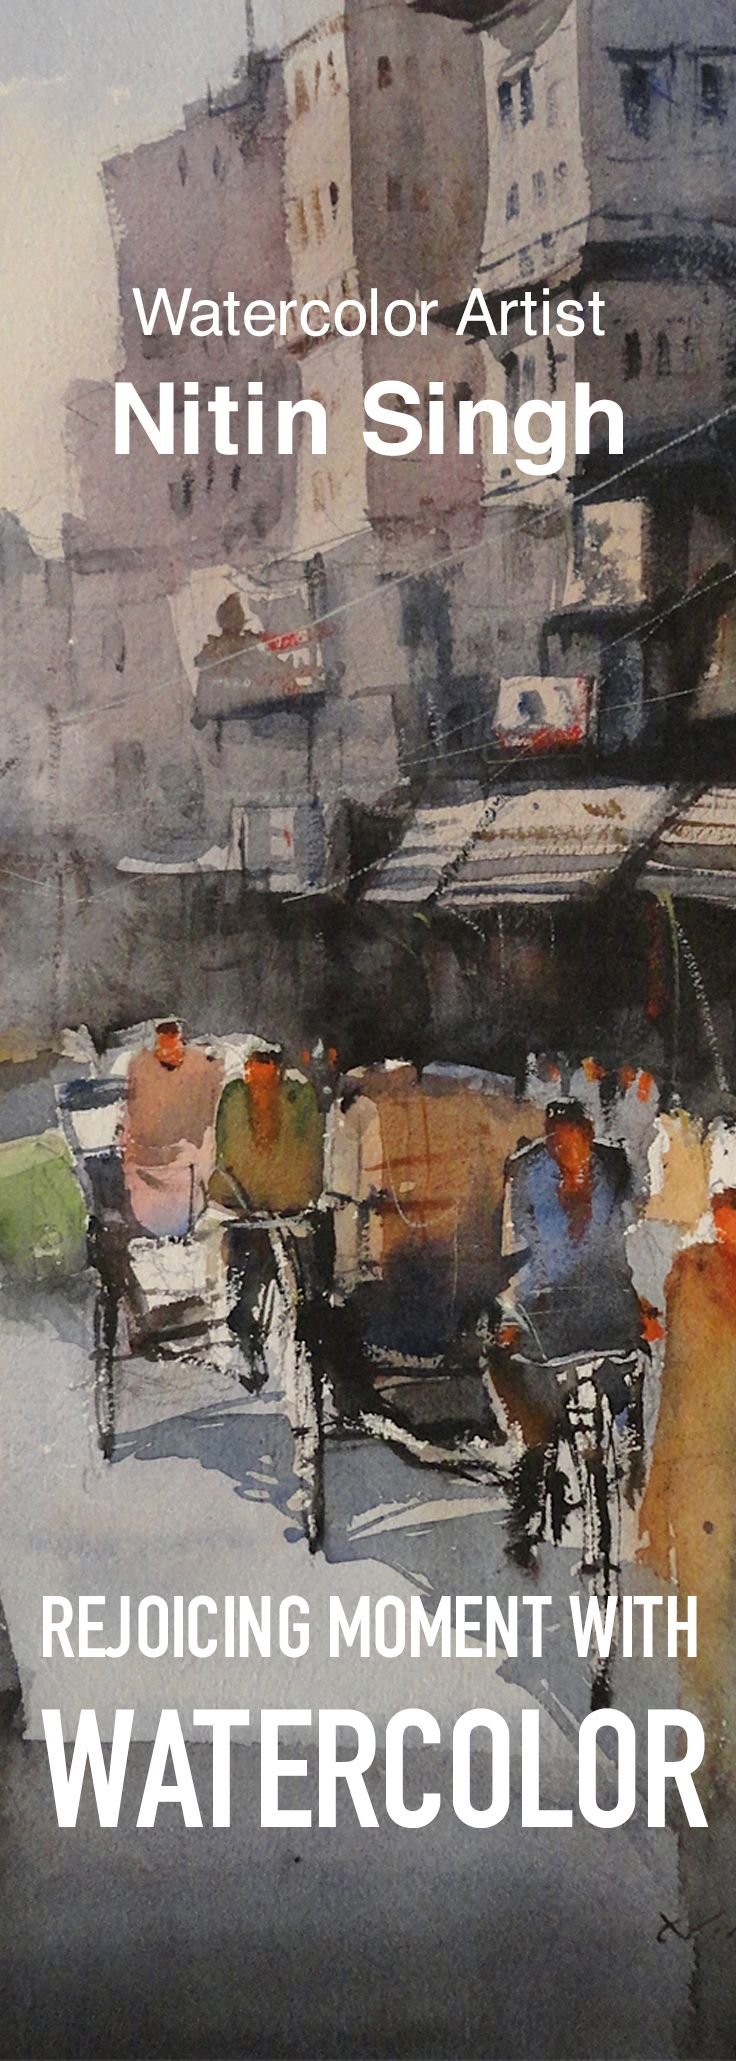 watercolor paintings from expressionist artist Nitin Singh, read through some of his exciting stories how substantially he approached watercolor artwork and what he thinks being a watercolor artist.